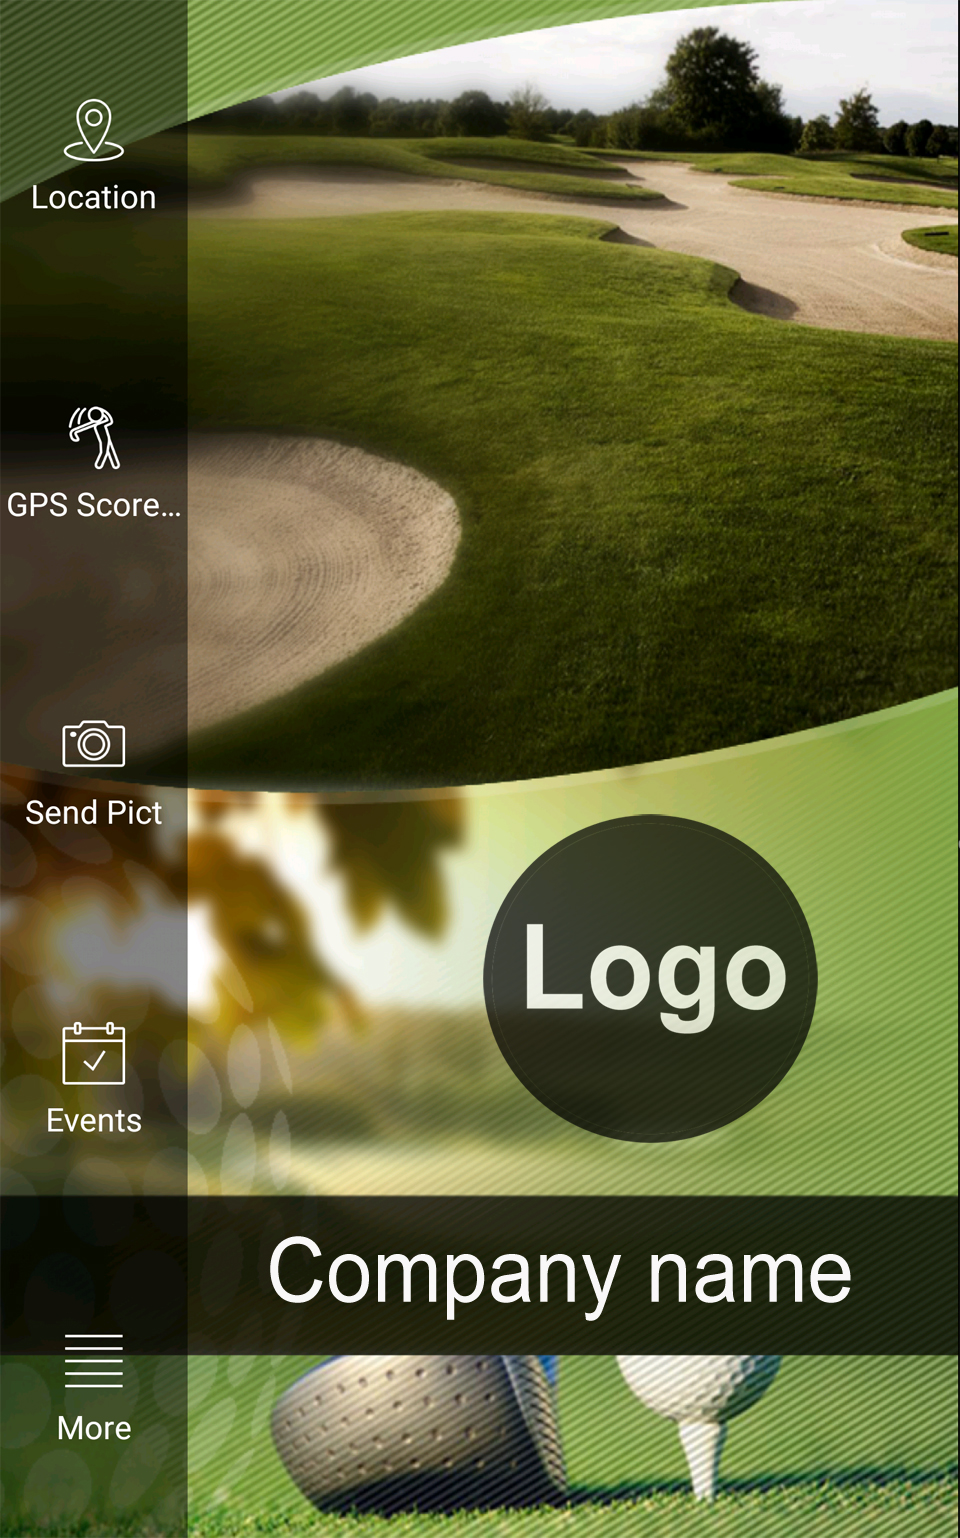 Golf Course Mobile App